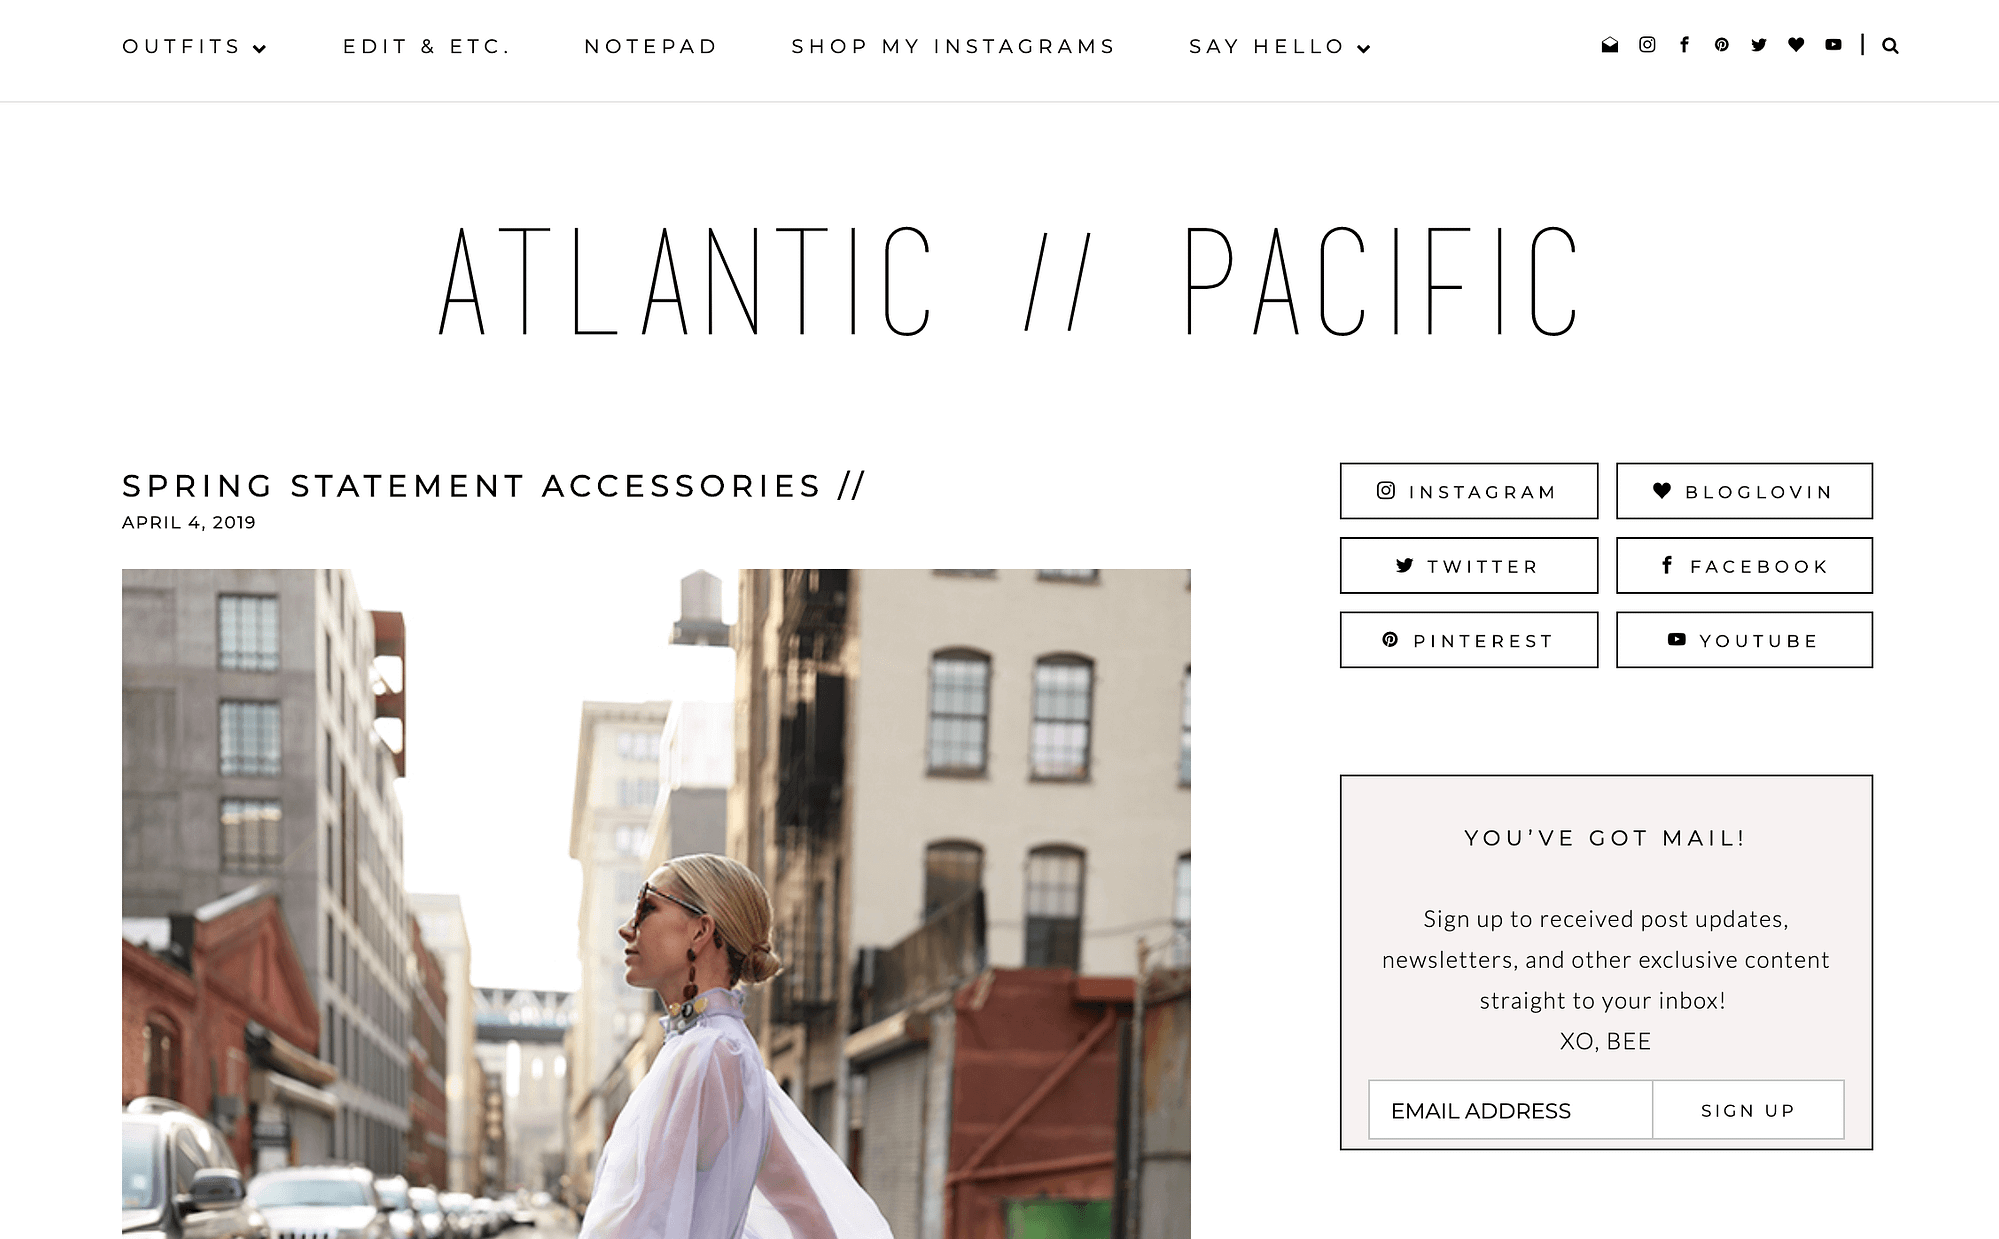 El blog de moda de Atlantic Pacific.